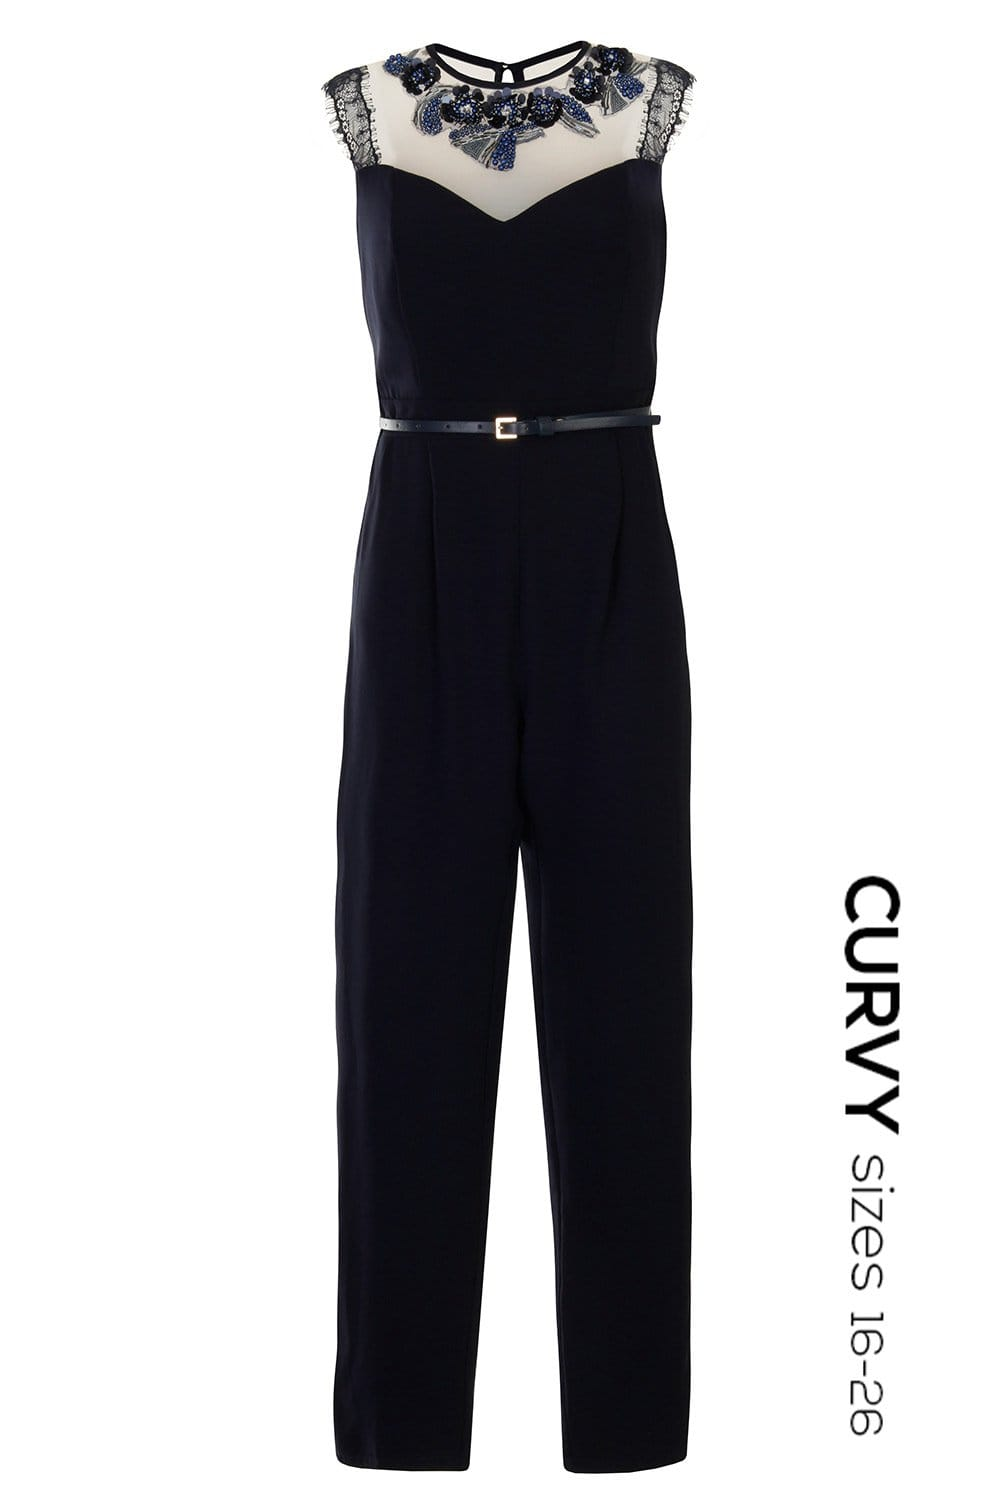 Excellent Jumpsuits Are A Curvy Girls Best Friend Notice How The Jumpsuits